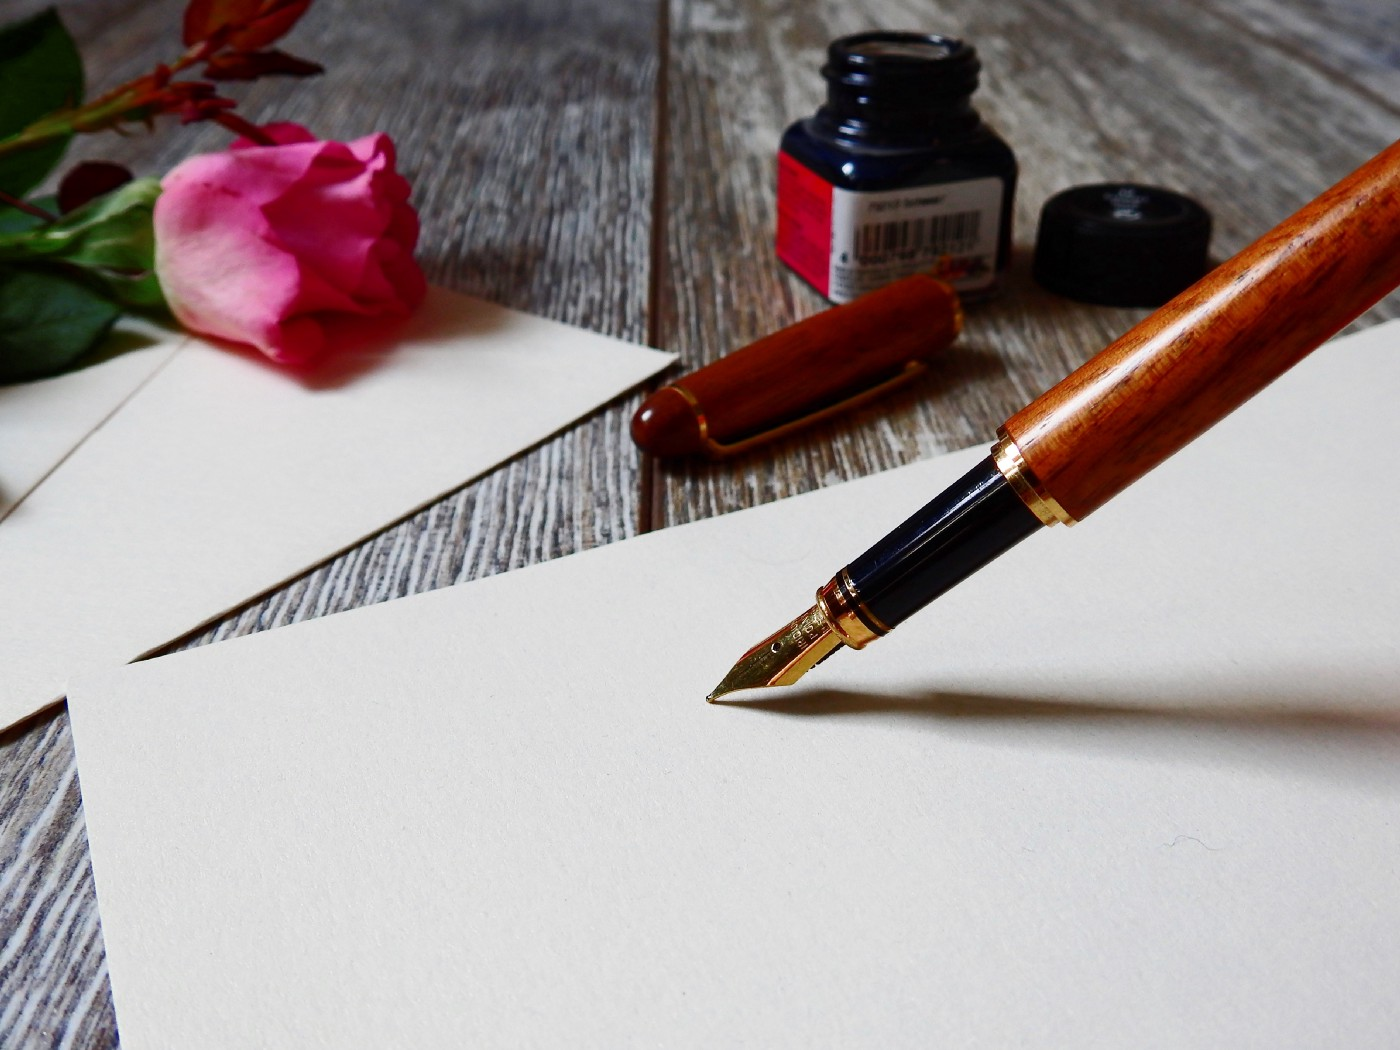 Image of a pen writing on paper.